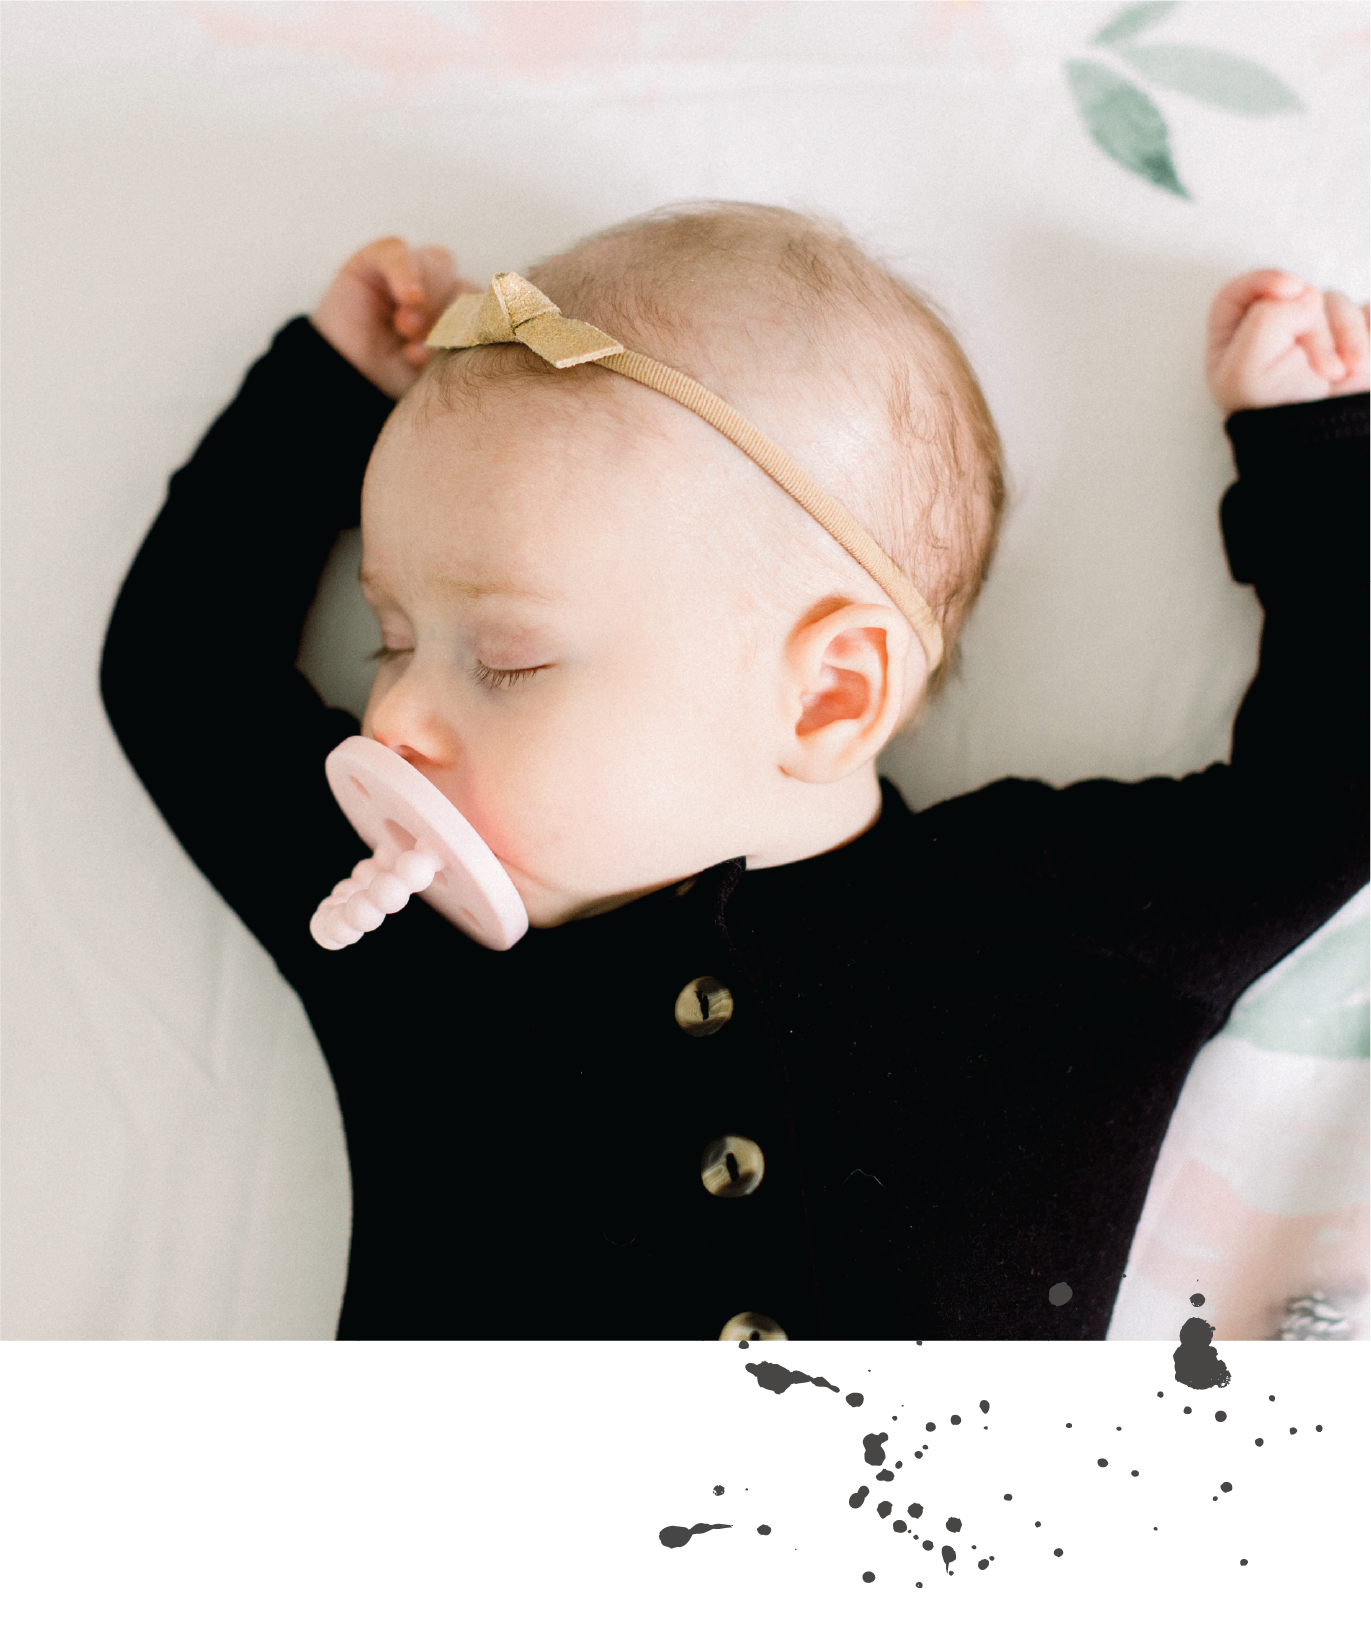 Imagine a sleep method that… - allows co-sleeping and bed sharing (no shaming here)is completely customizablerequires only 90% commitment (because #momlife needs flexibility)results in a baby no longer sleep-deprived, but also HAPPIER, and easier to parent...because getting your baby to sleep should help you live life, it shouldn't BECOME your life.